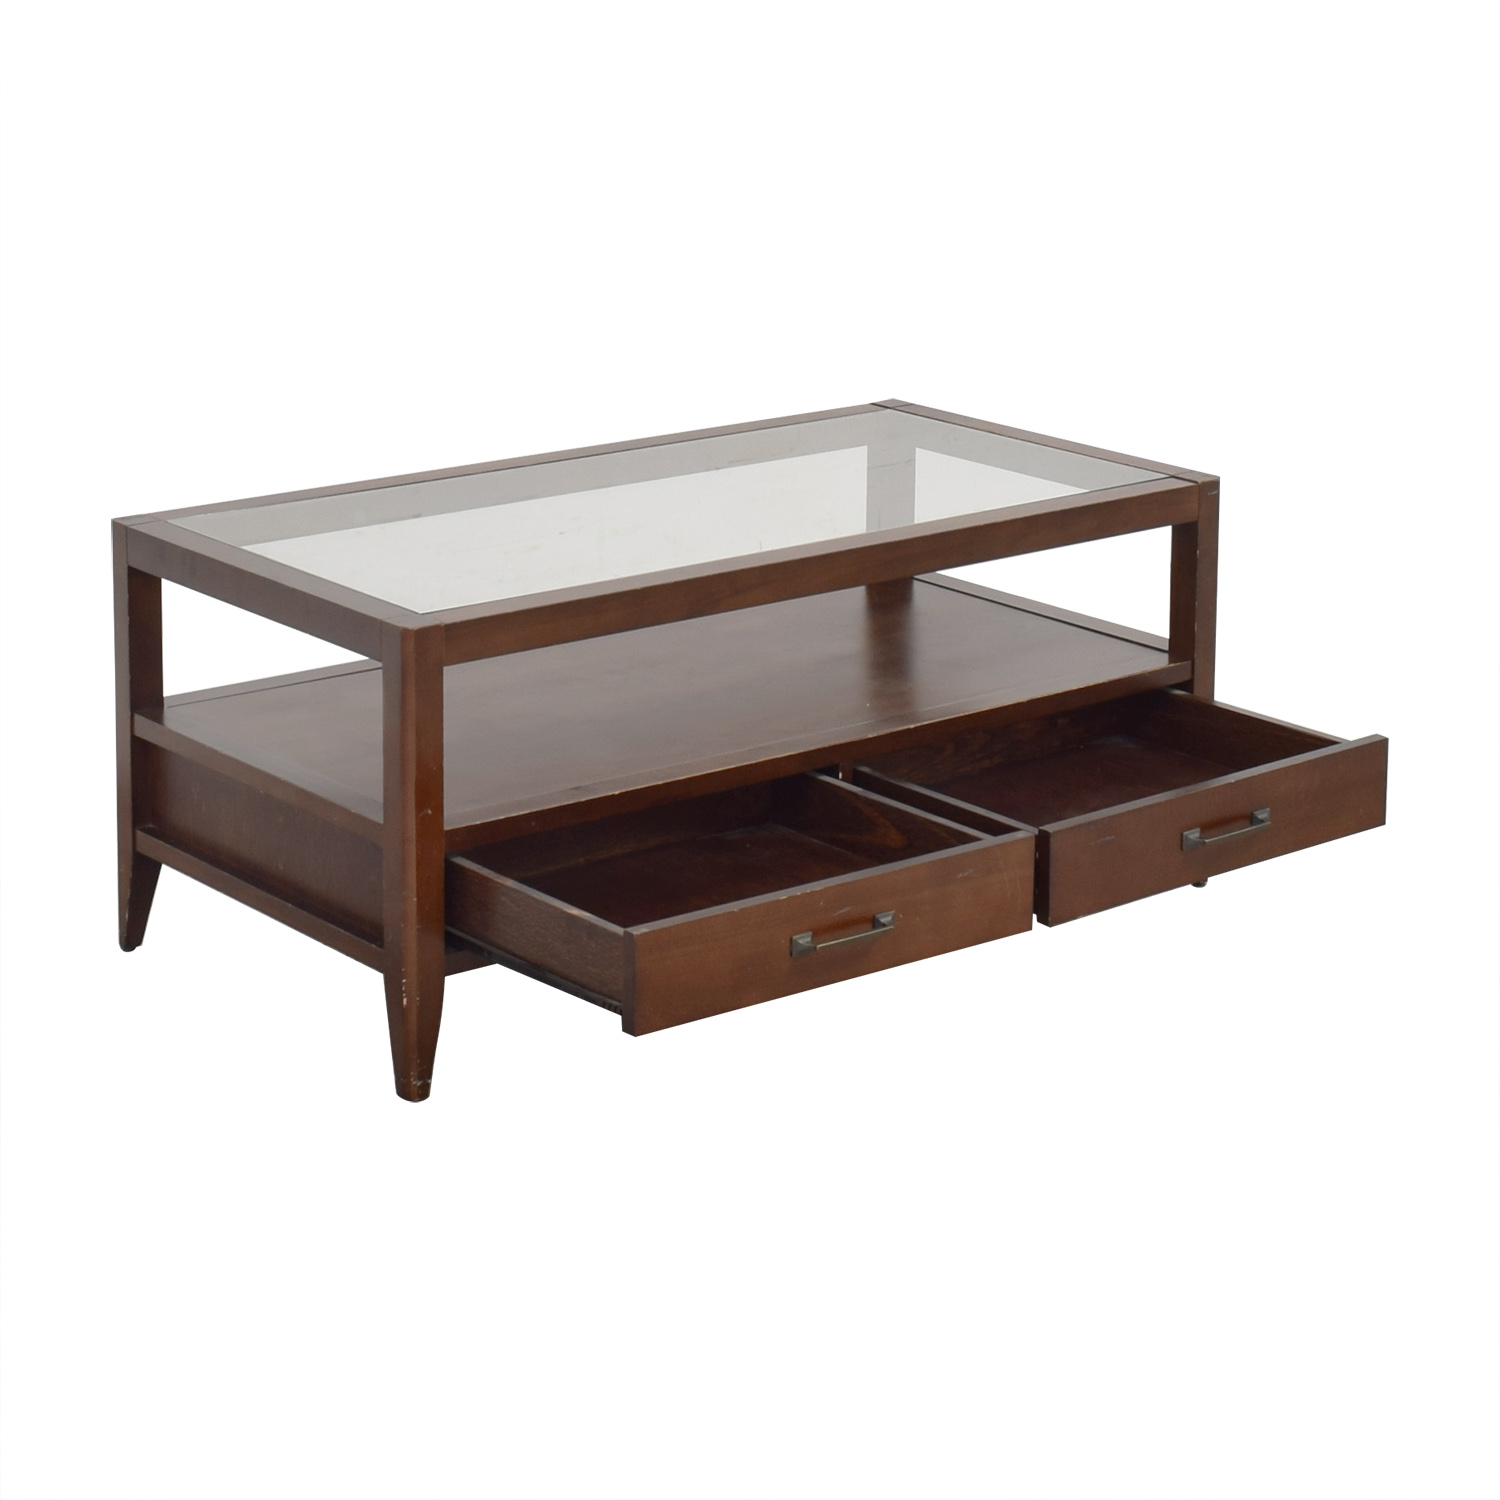 Crate & Barrel Crate & Barrel Two Drawer Coffee Table coupon